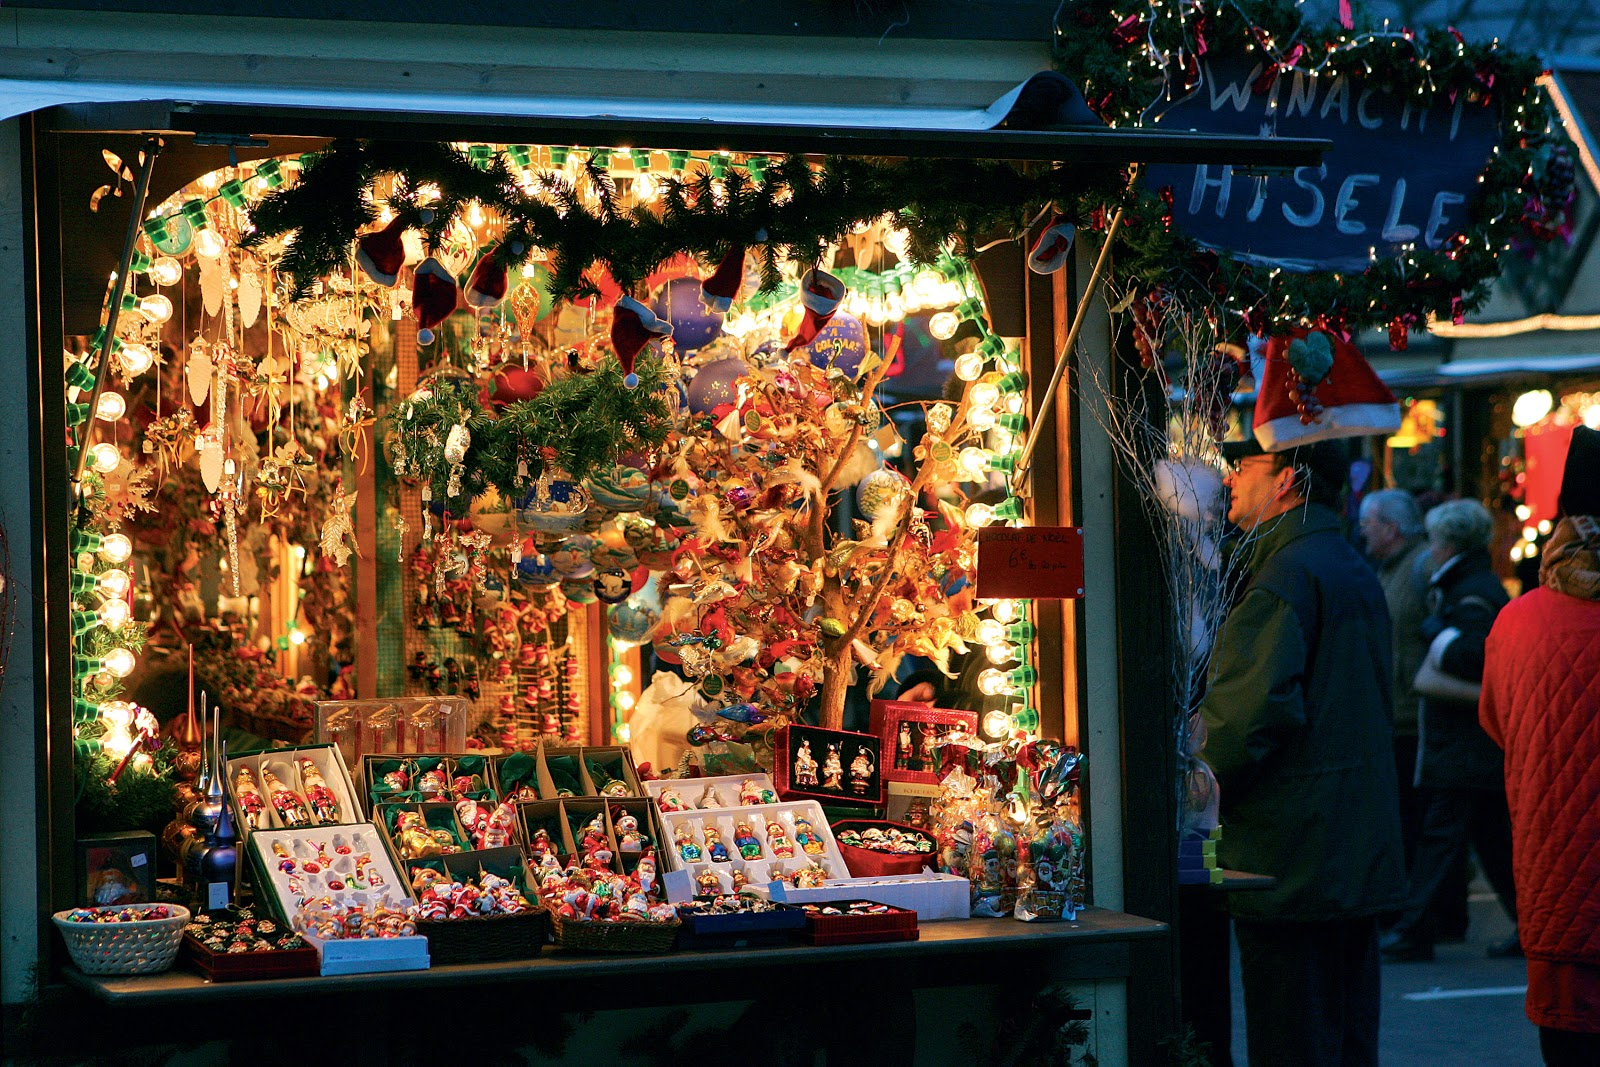 Christmas gifts are plentiful in one of Colmar's Christmas market stalls. © PSN - Betsch.